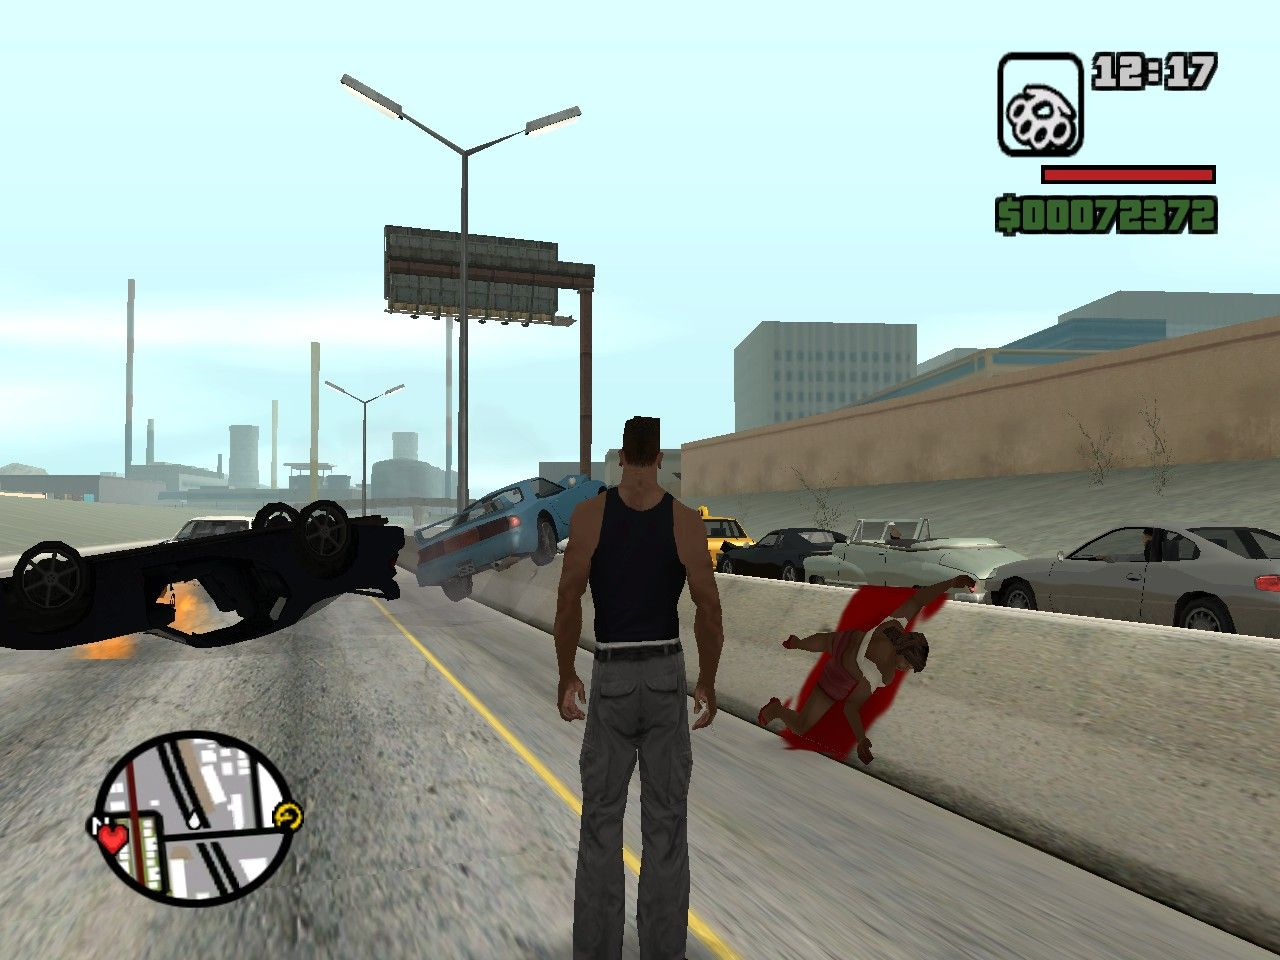 Gta san andreas highly compressed 6mb android - liecremacbreak